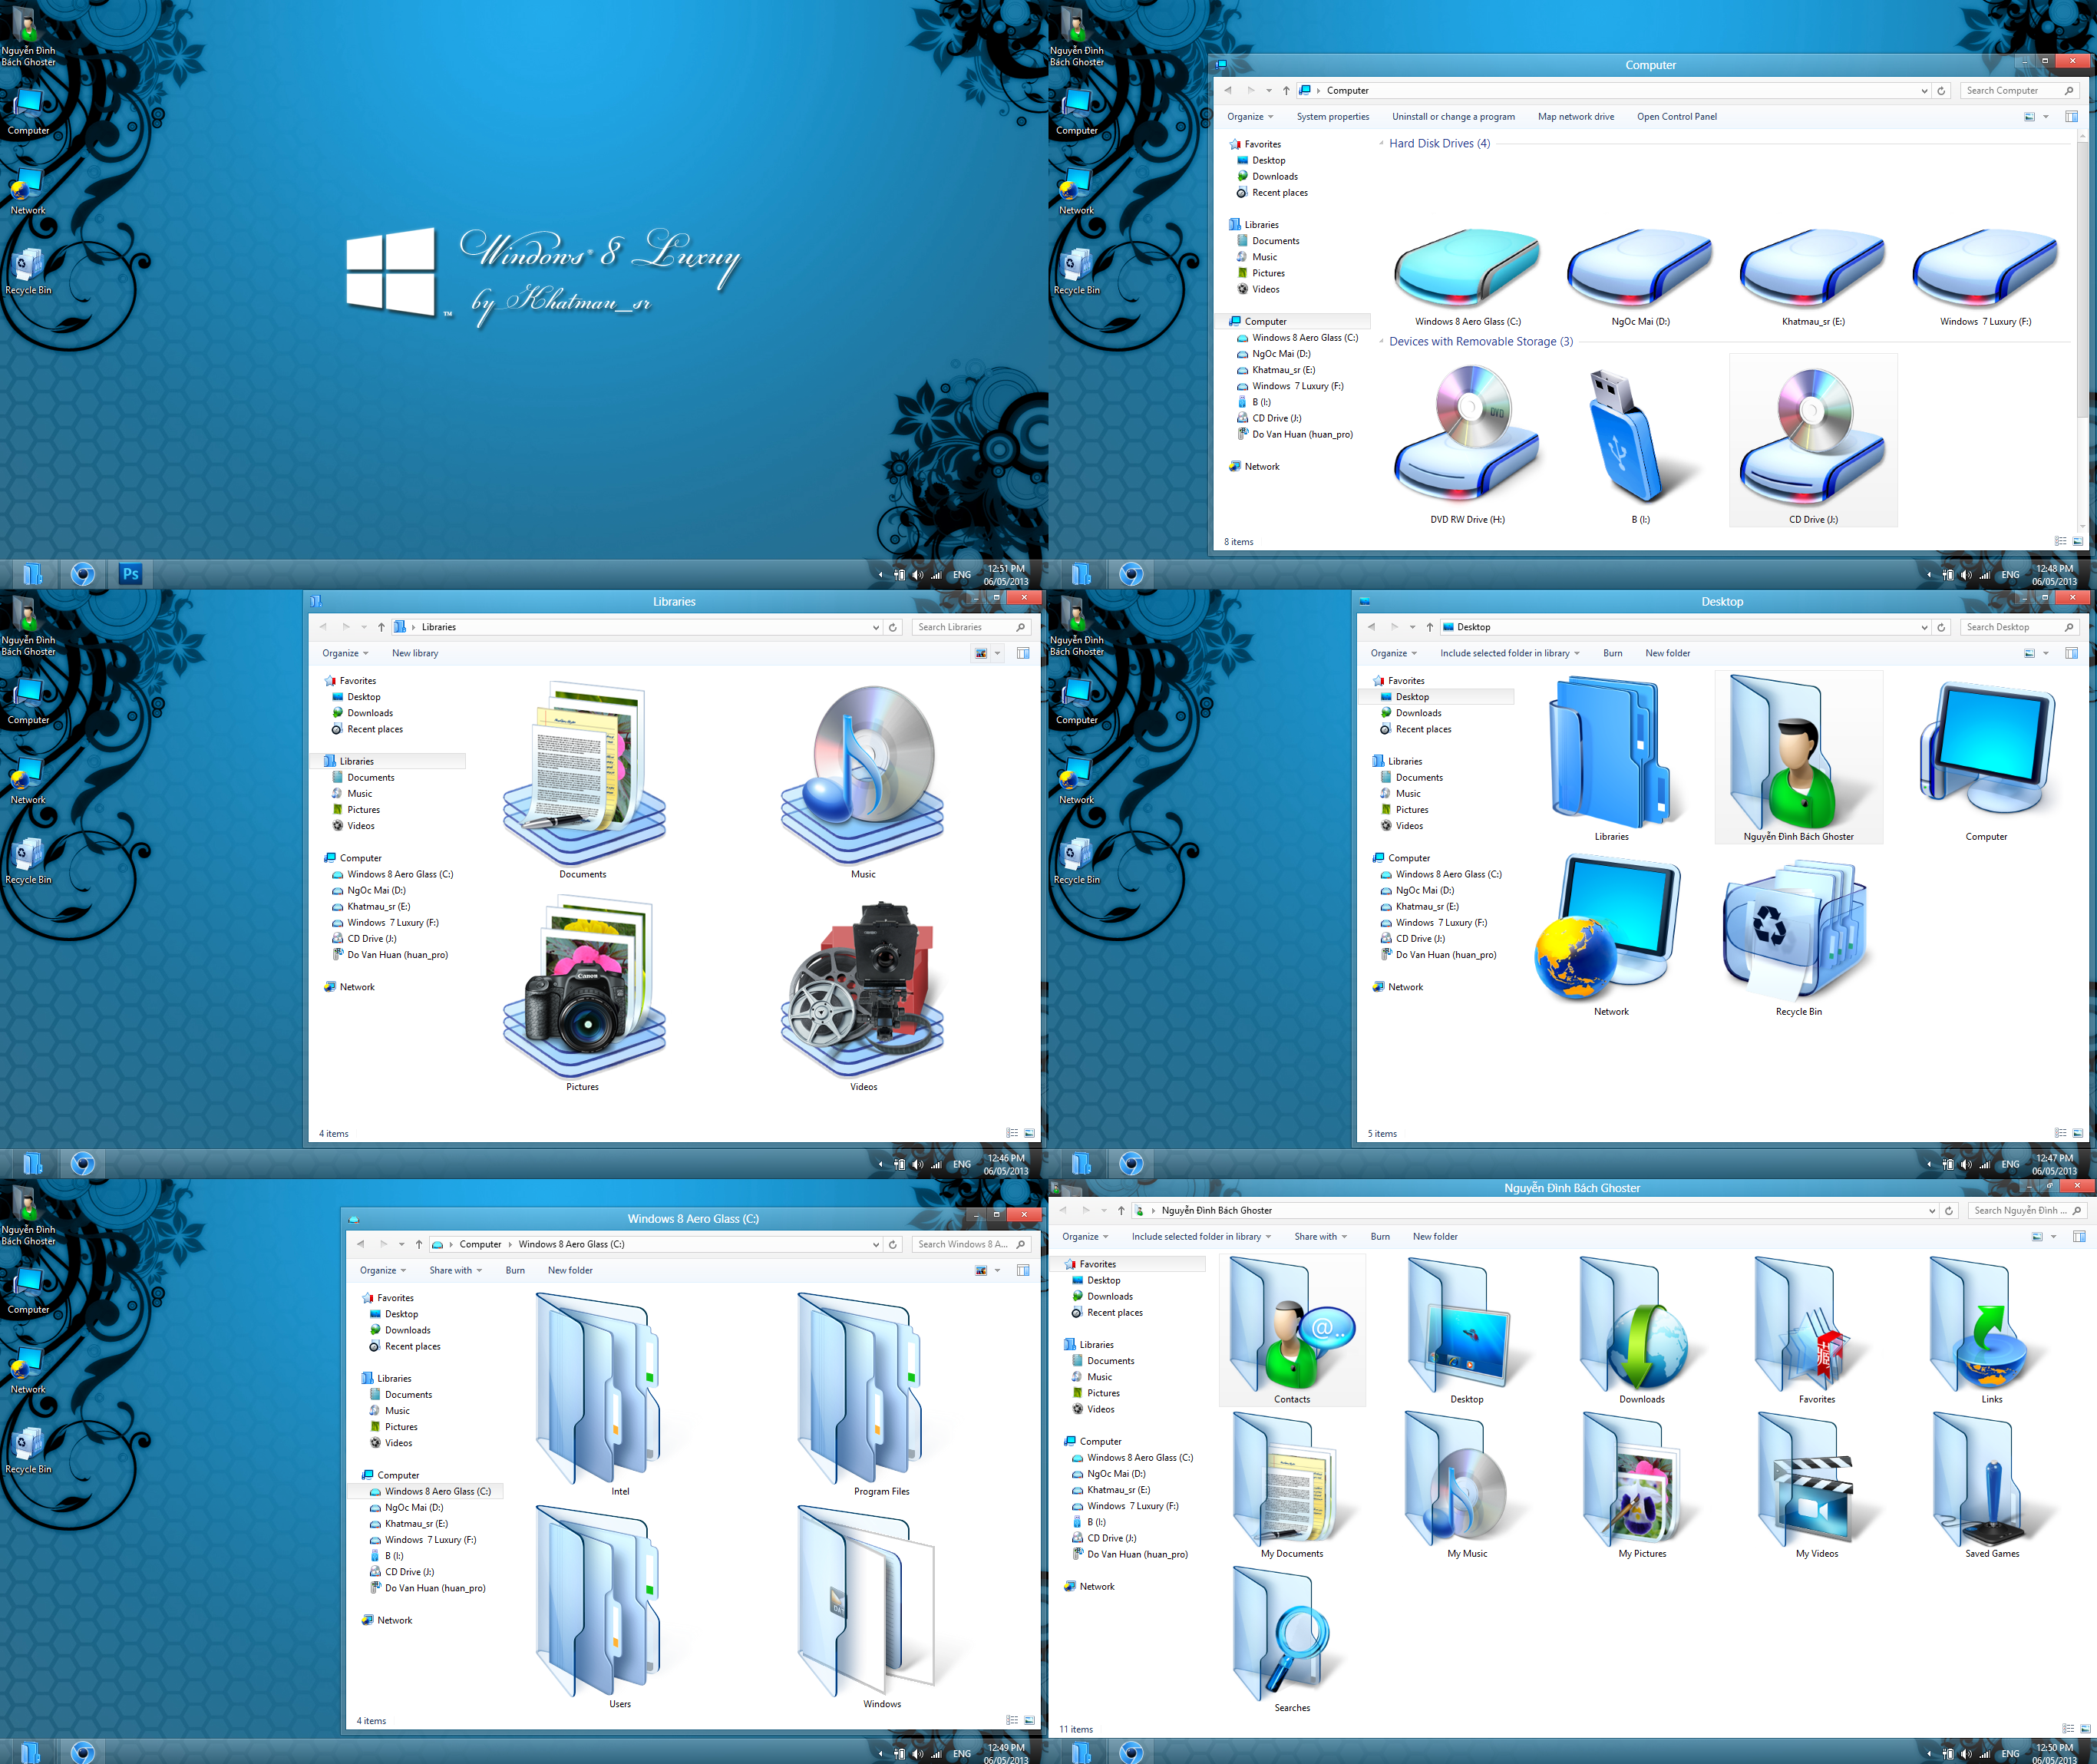 windows_8_aero_glass_by_khatmau-d64a6is.png